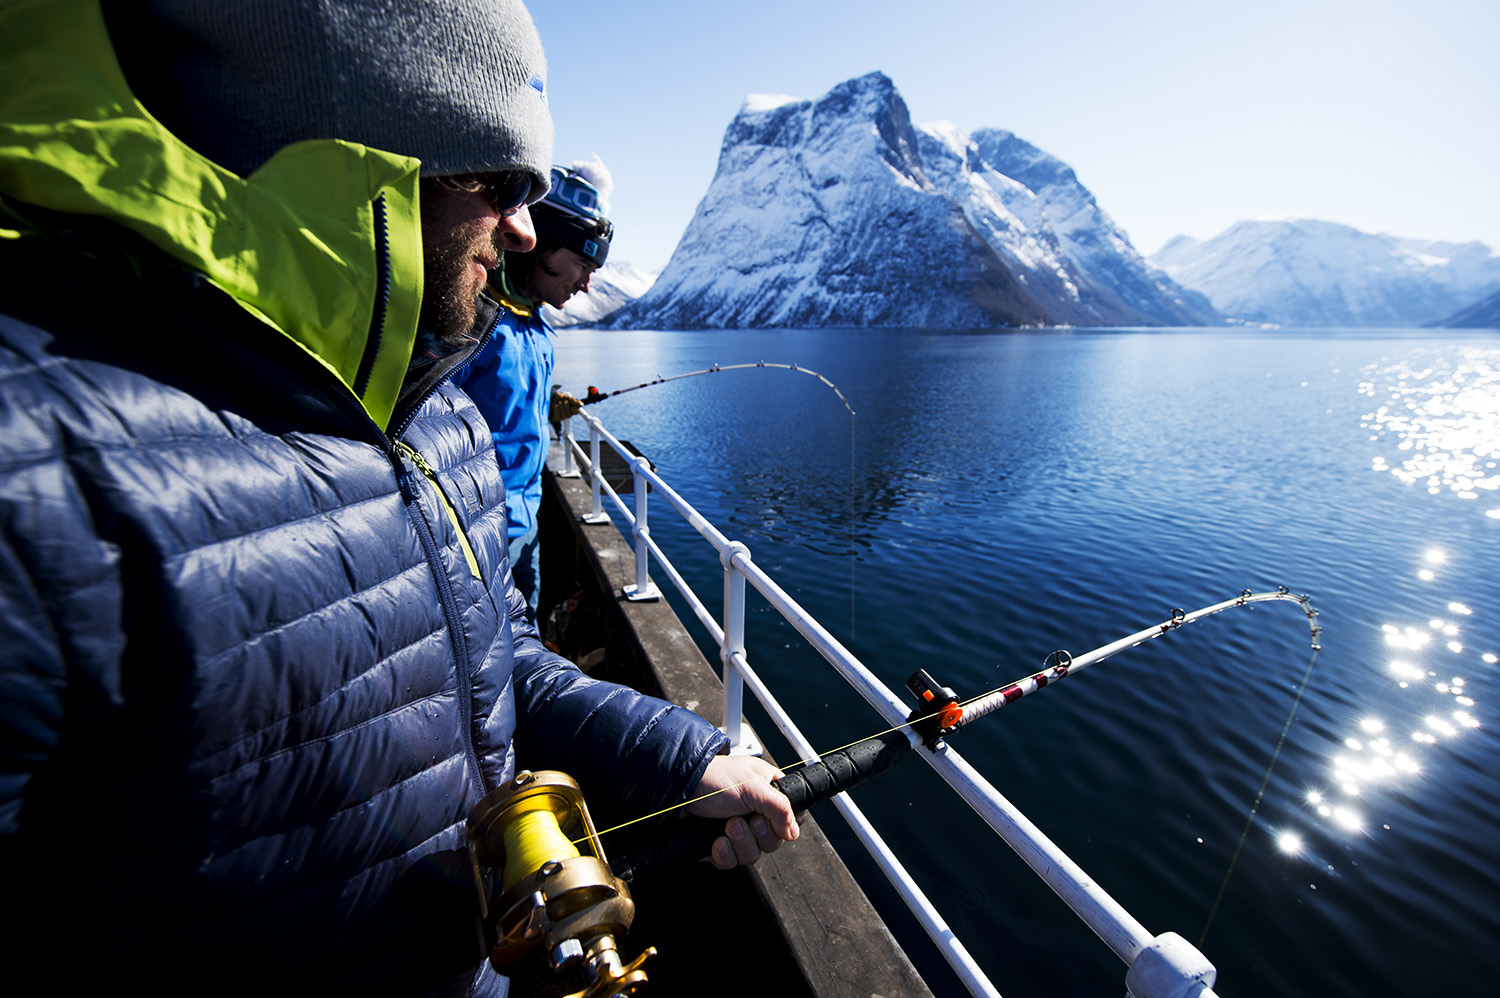 Fjordfishing - Photo: FjordNorway.com